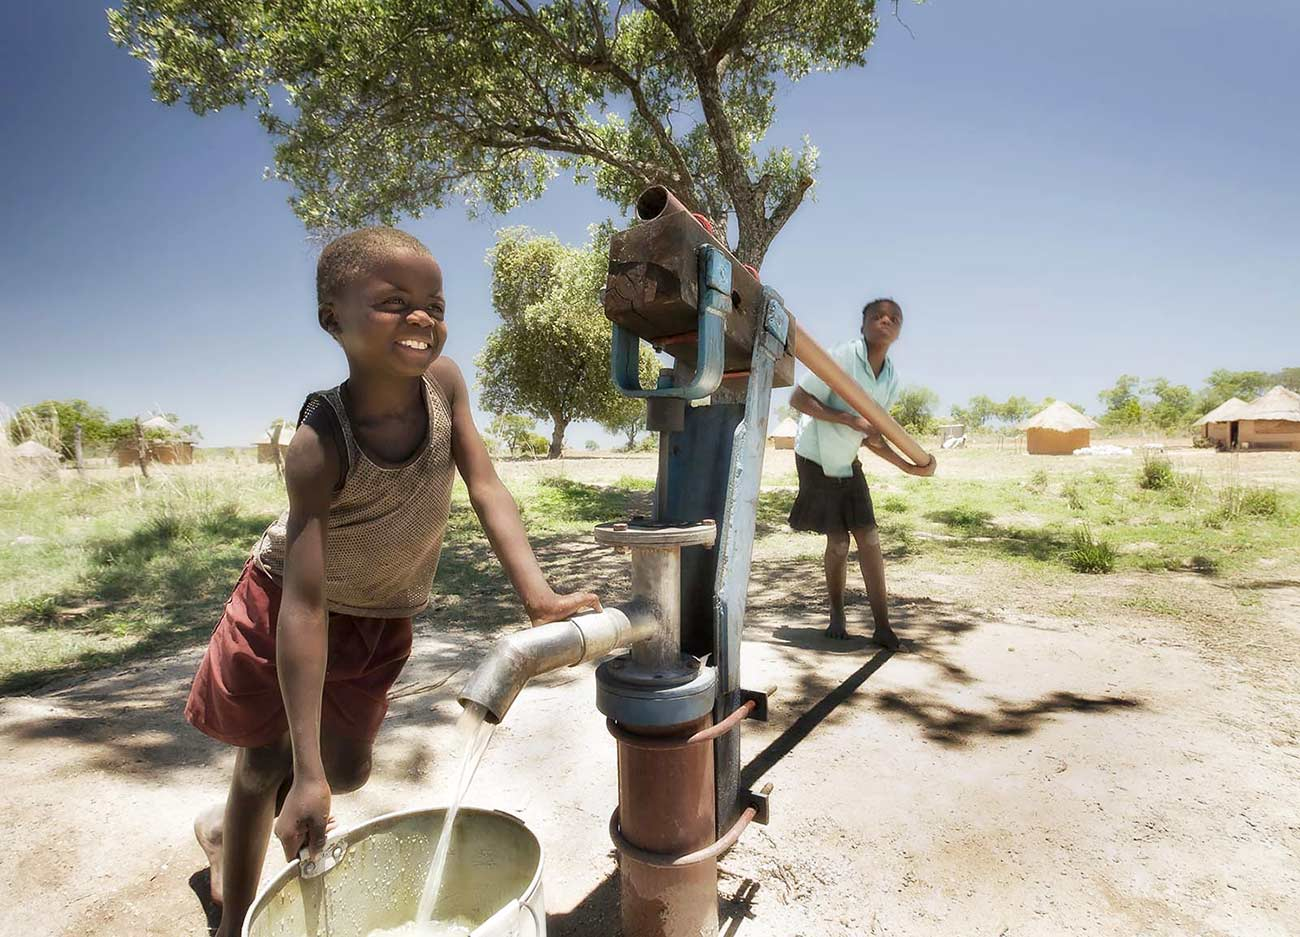 A borehole water supply installed for a village community by a mine in the area - CSI photography portfolio